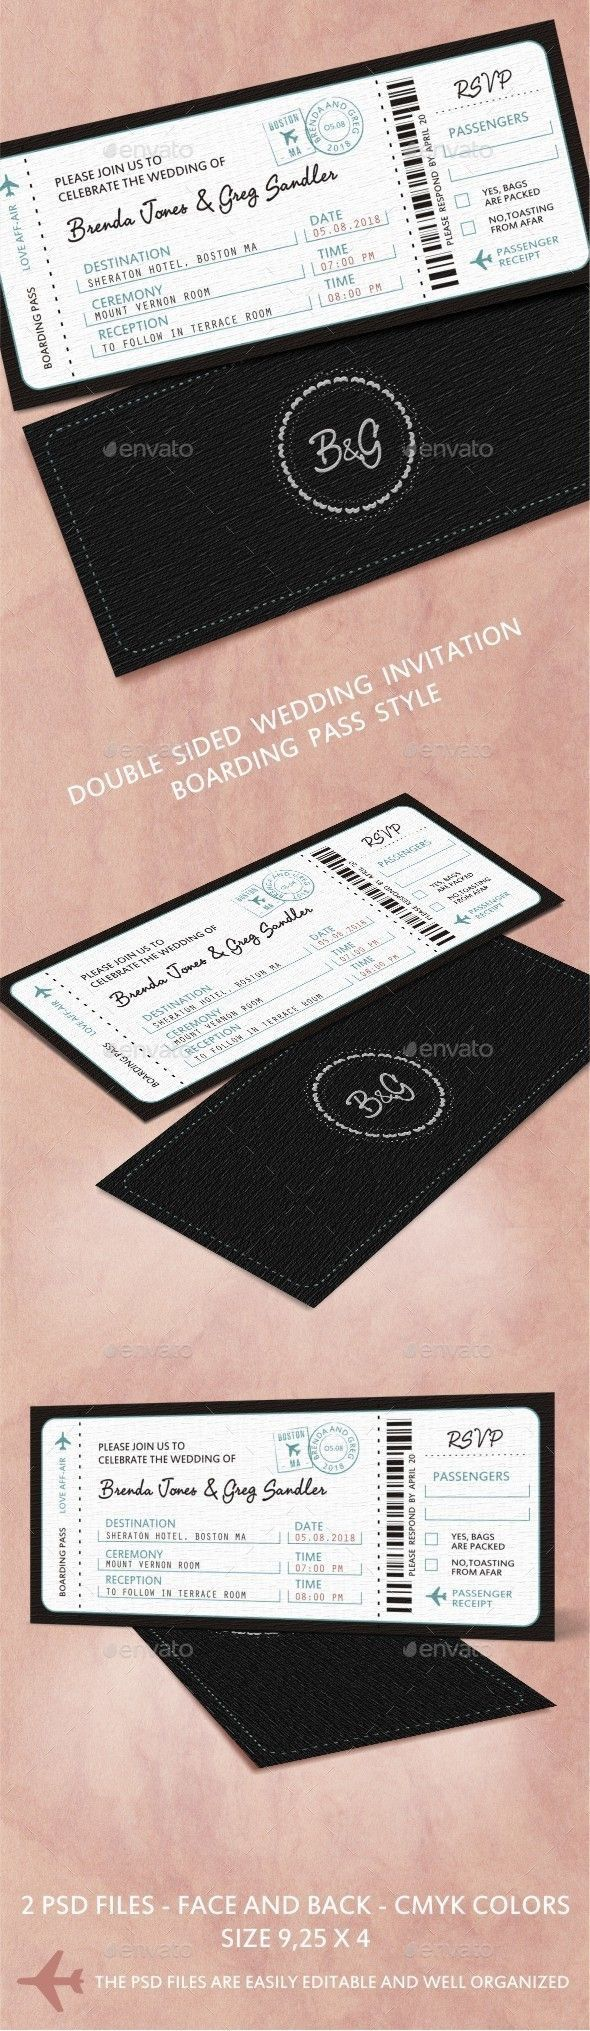 movie ticket stub wedding invitation%0A Buy Wedding Invitation by Spyborg on GraphicRiver  Wedding Invitation in  Boarding Pass style    PSD files  u     Face and Back in CMYC colors